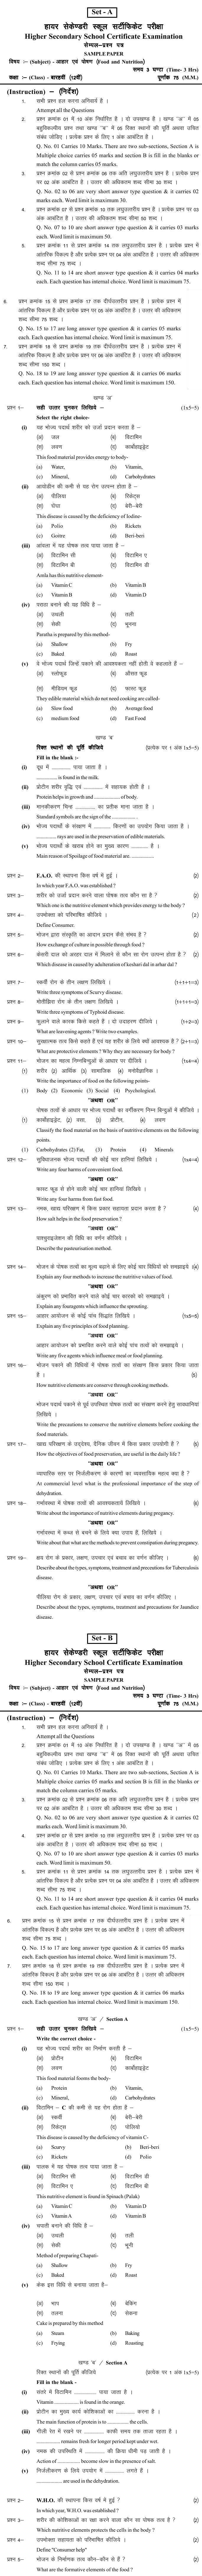 Chattisgarh Board Class 12 Food and NutritionSample Paper